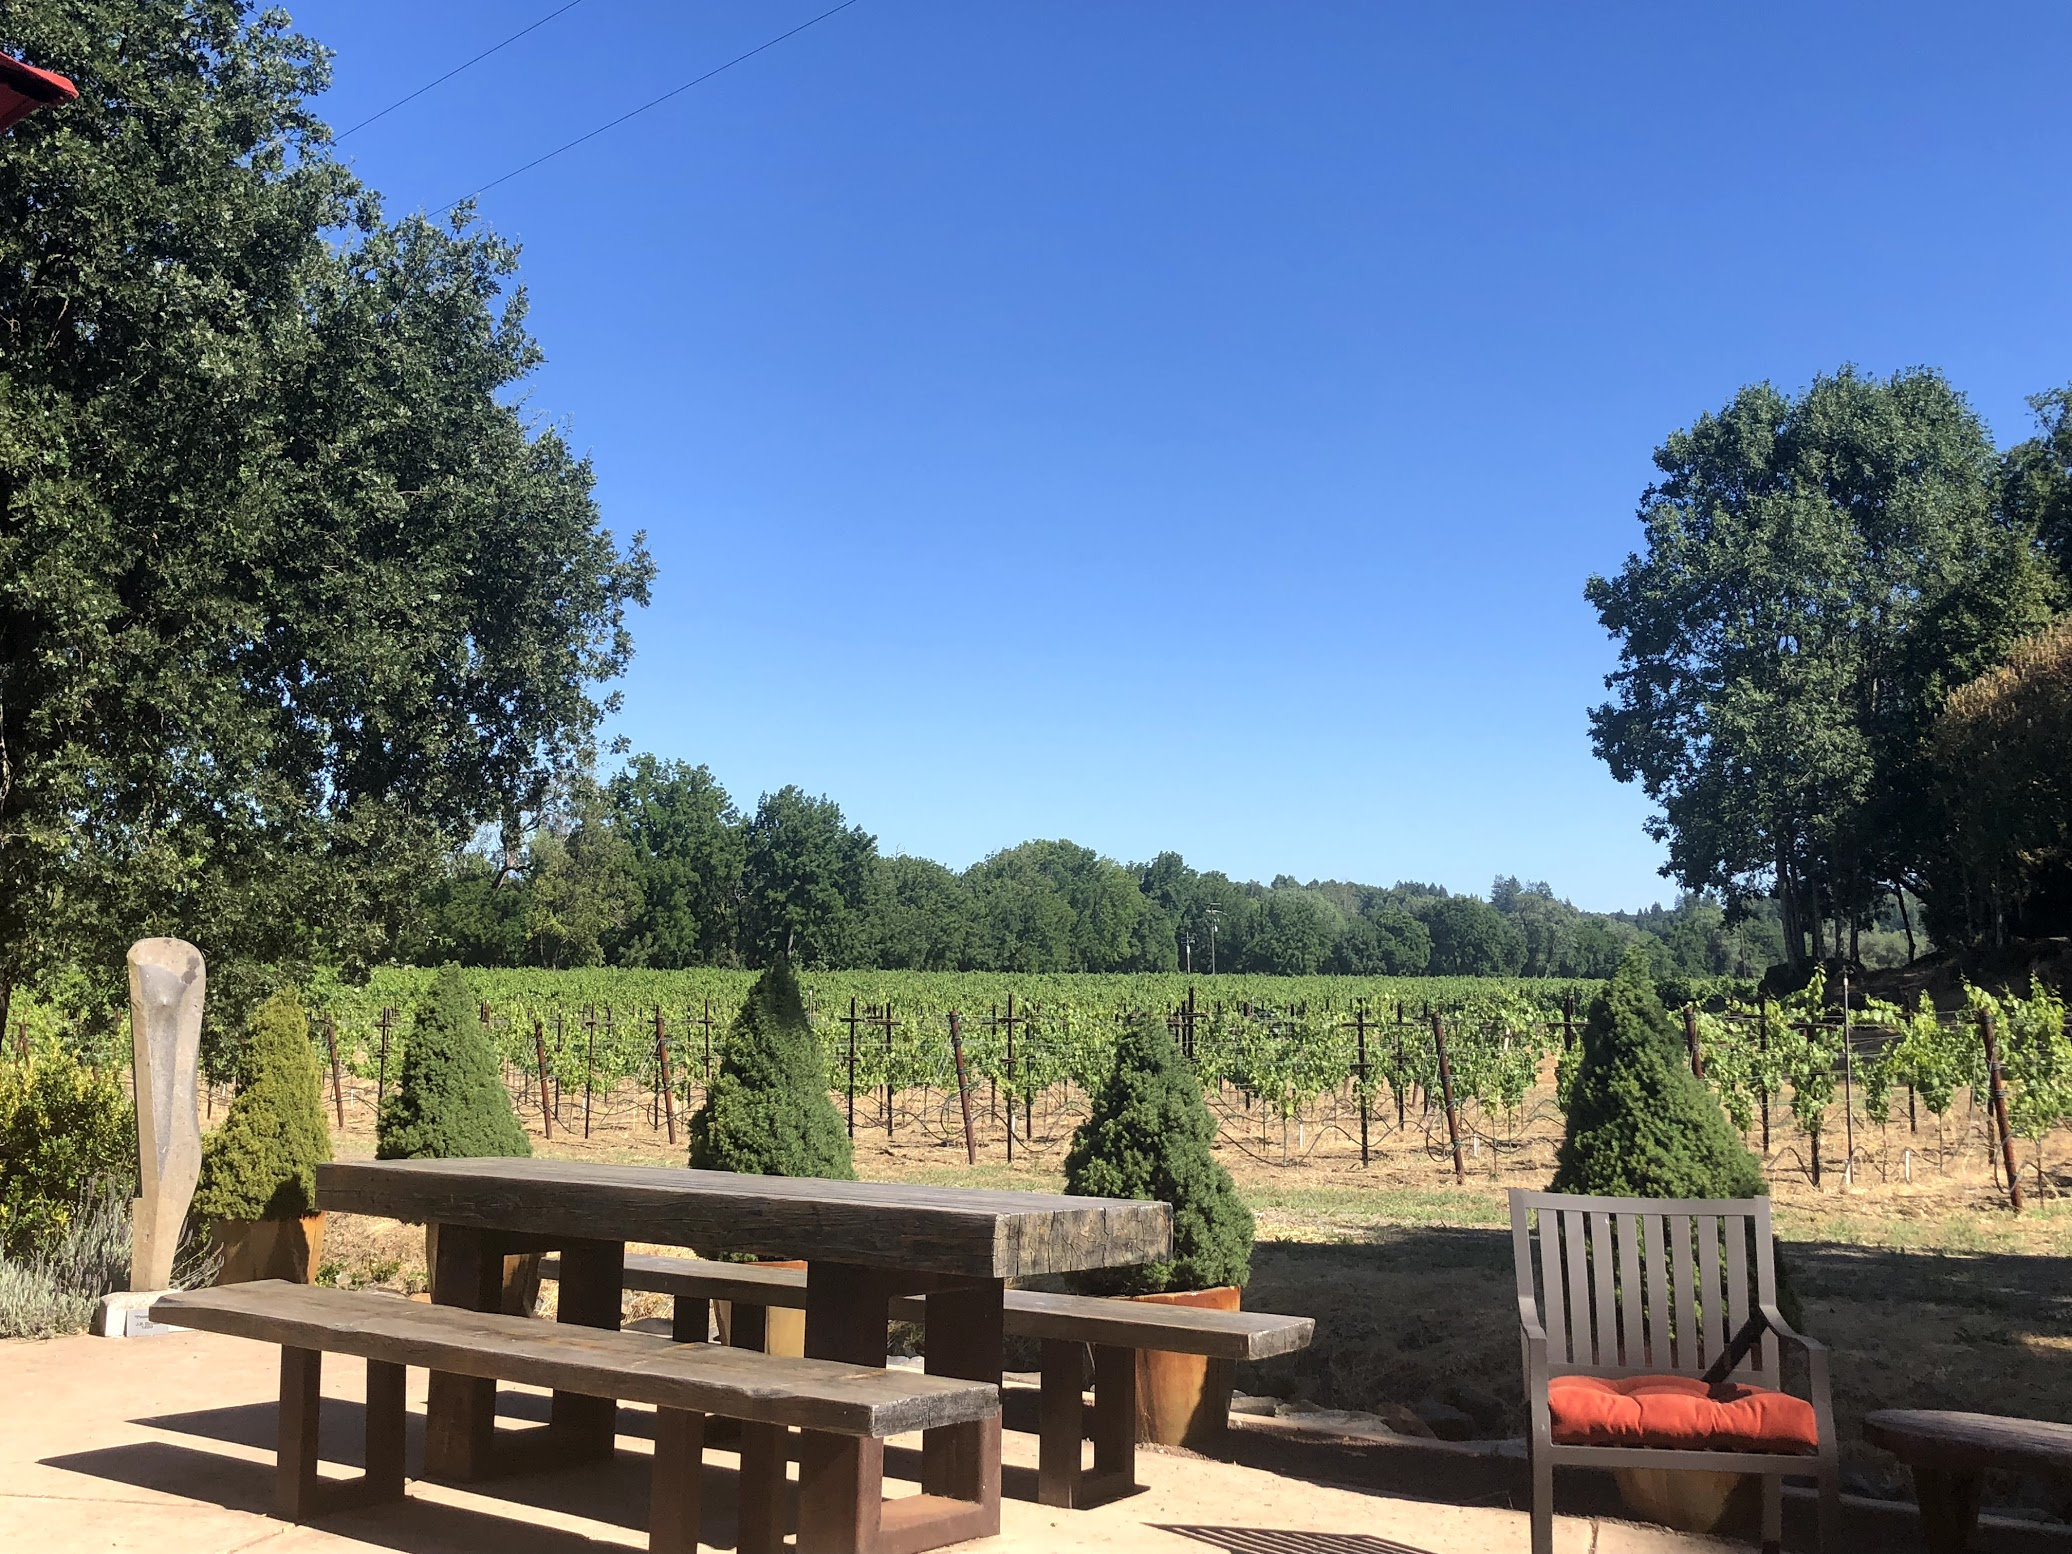 Gracianna Winery Patio Wine Tasting